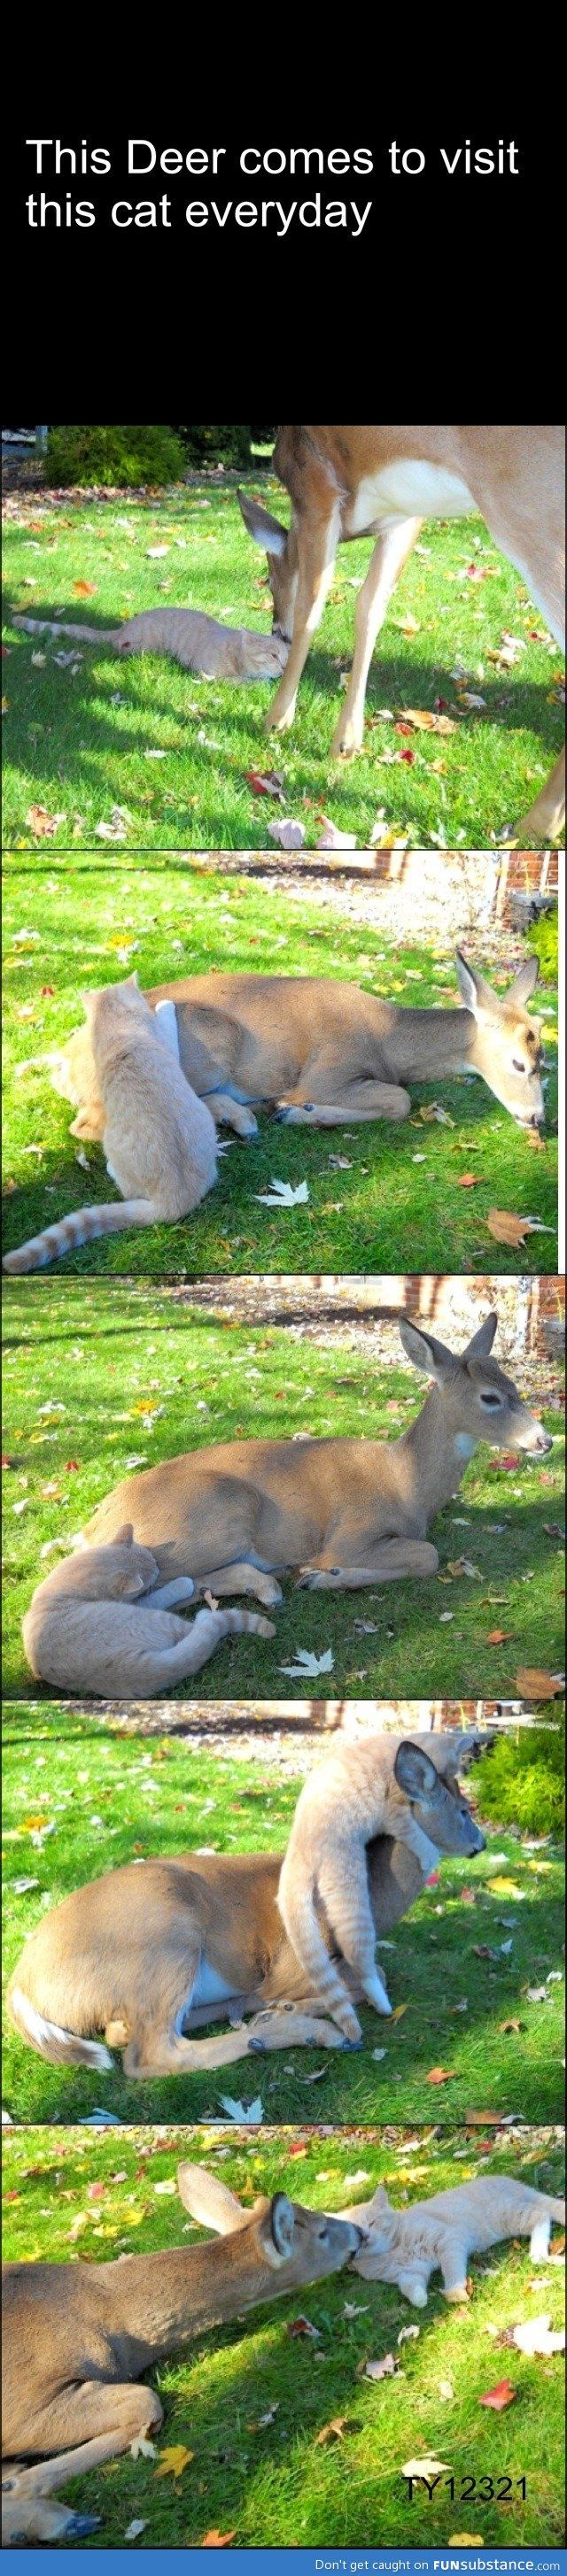 Deer visits cat every day.